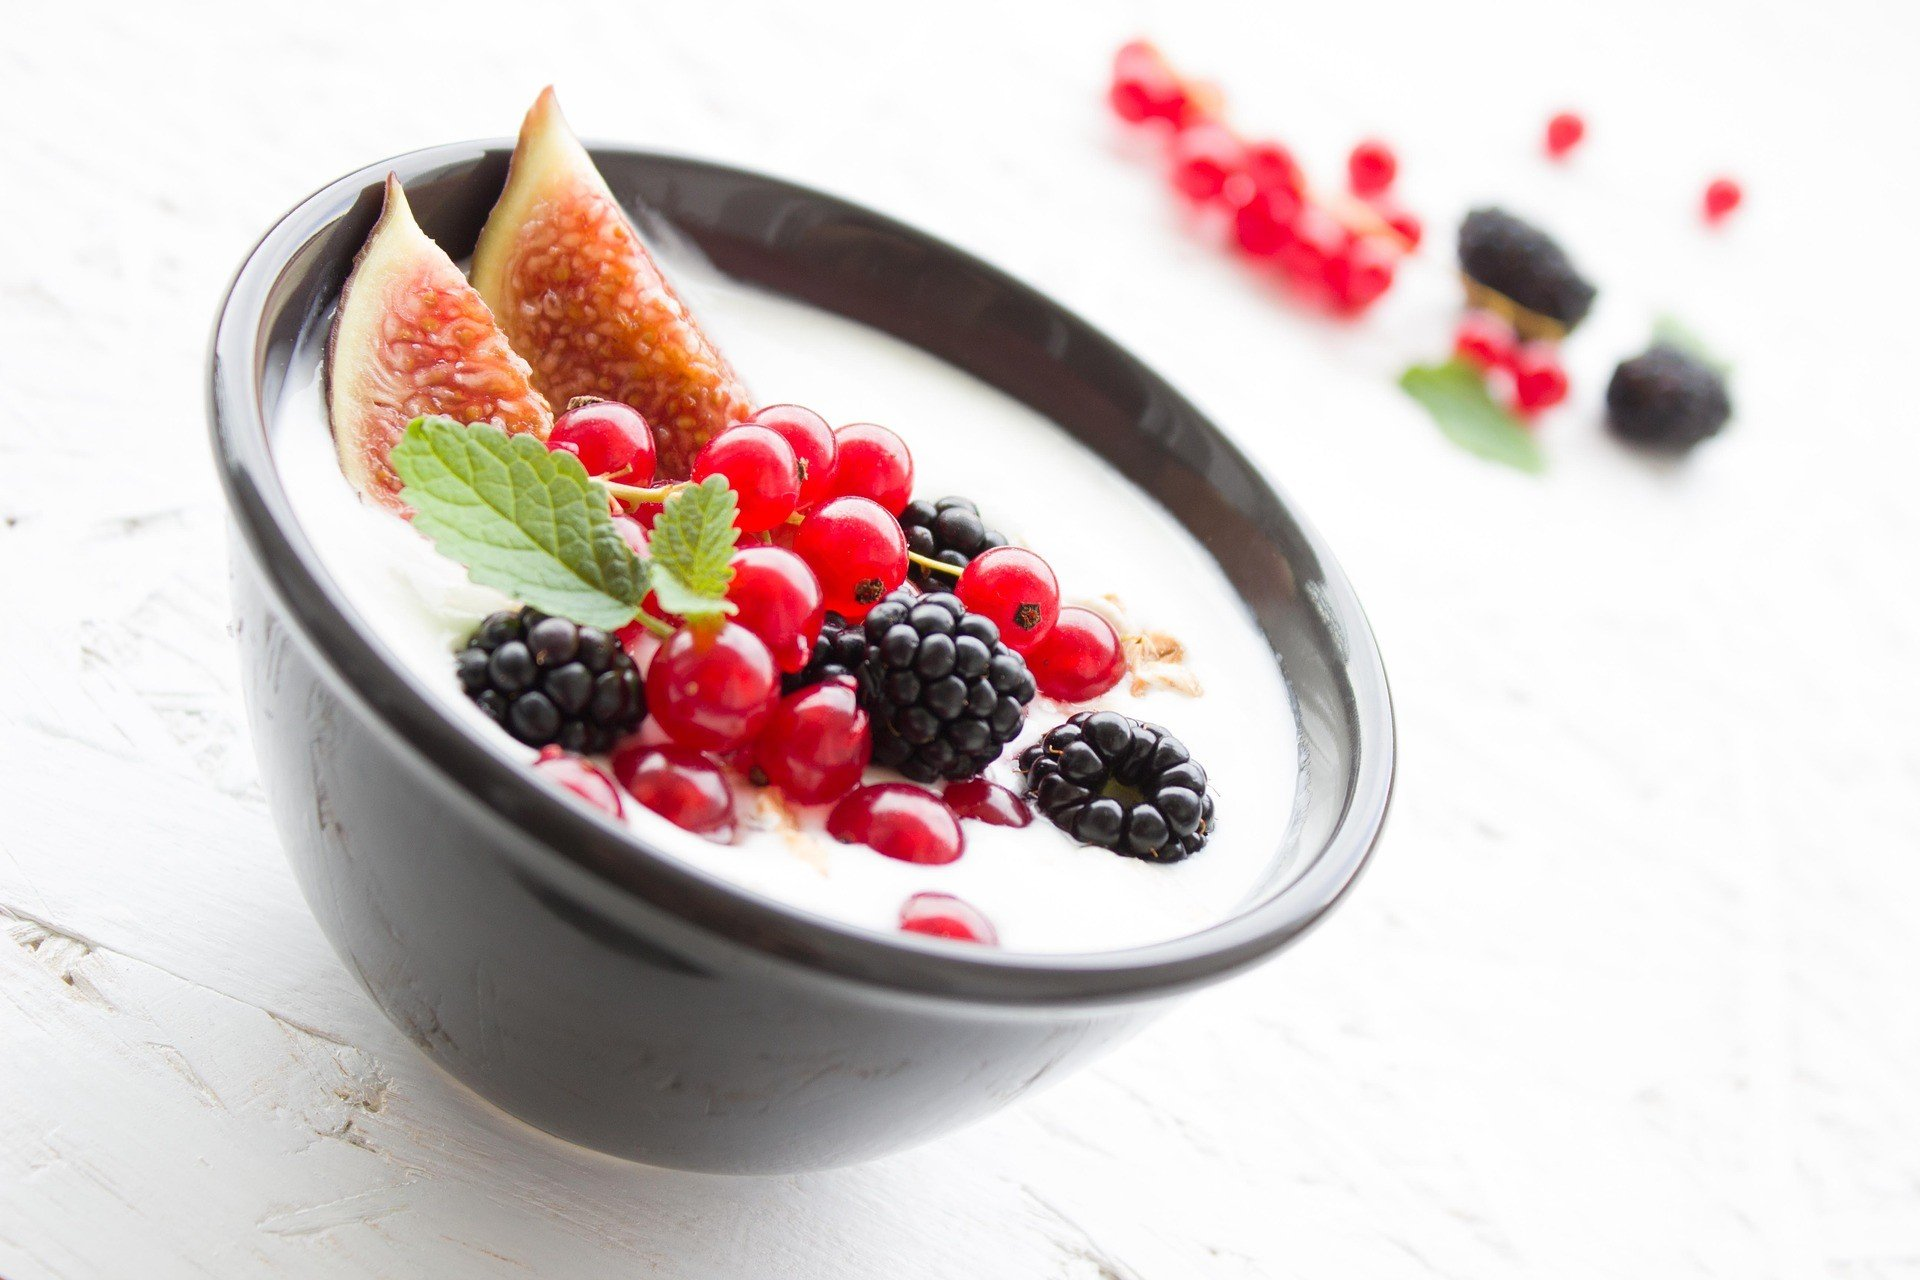 Berries Breakfast Fruit Fruits Fig Yogurt Healthy